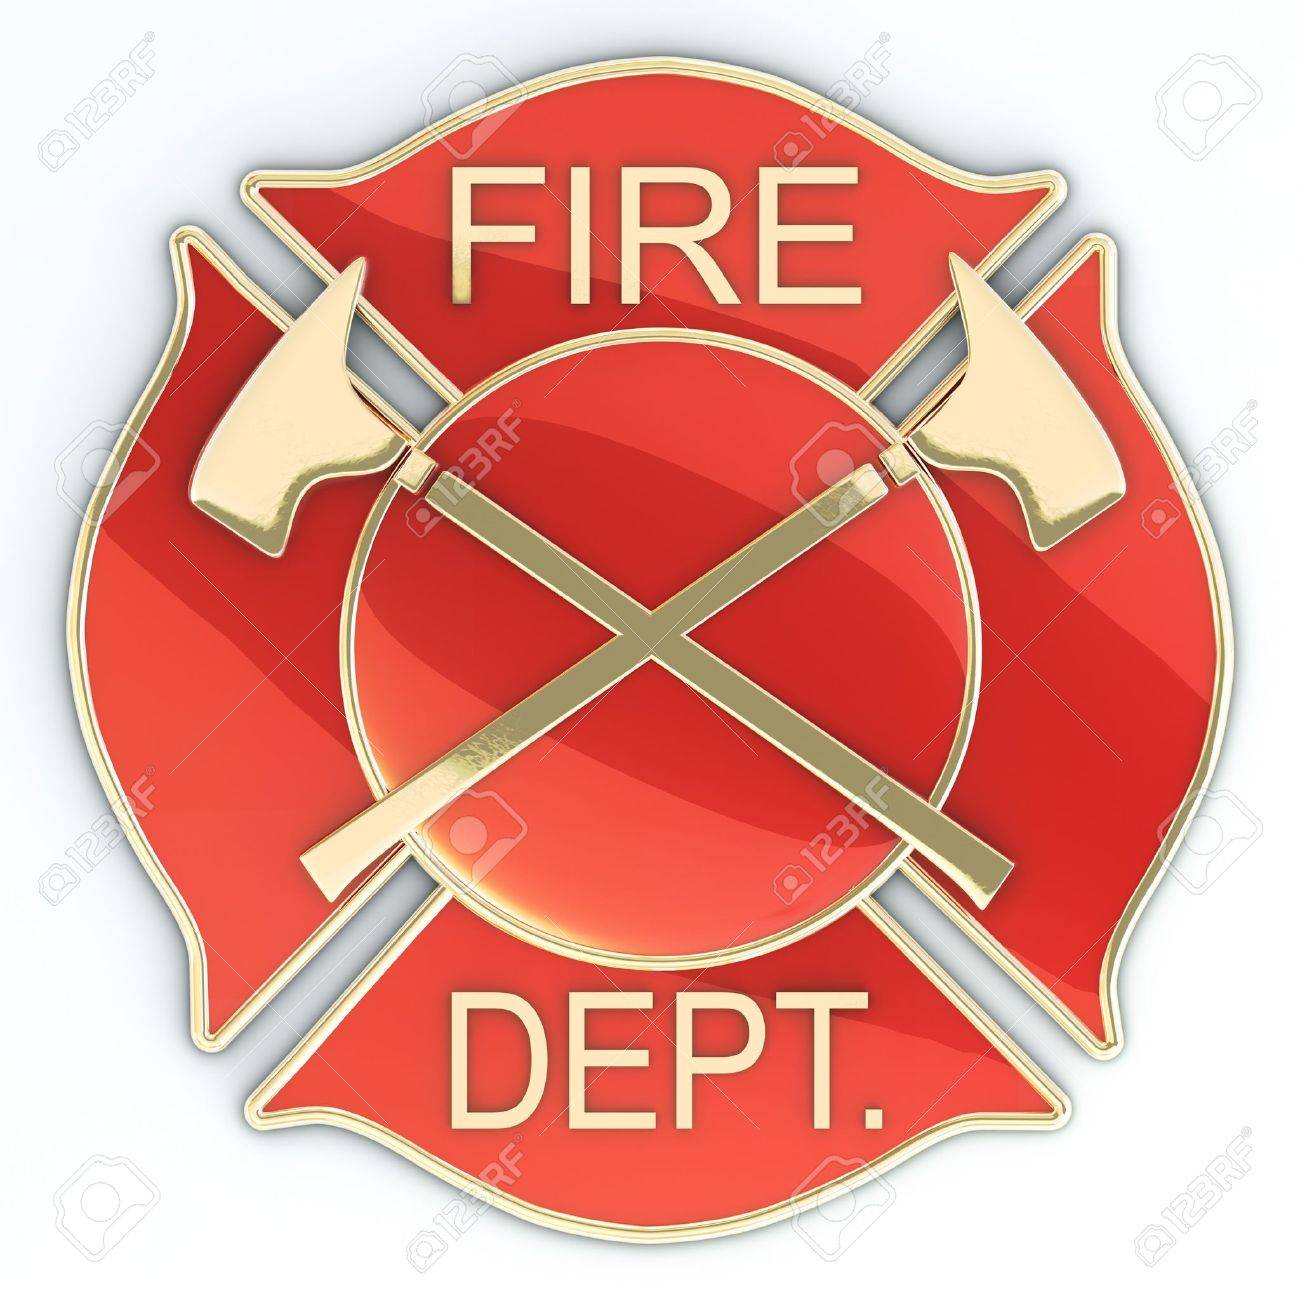 Fire department Maltese cross badge or symbol with axes, red with gold inlay with reflection. 3d image Stock Photo - 11083859